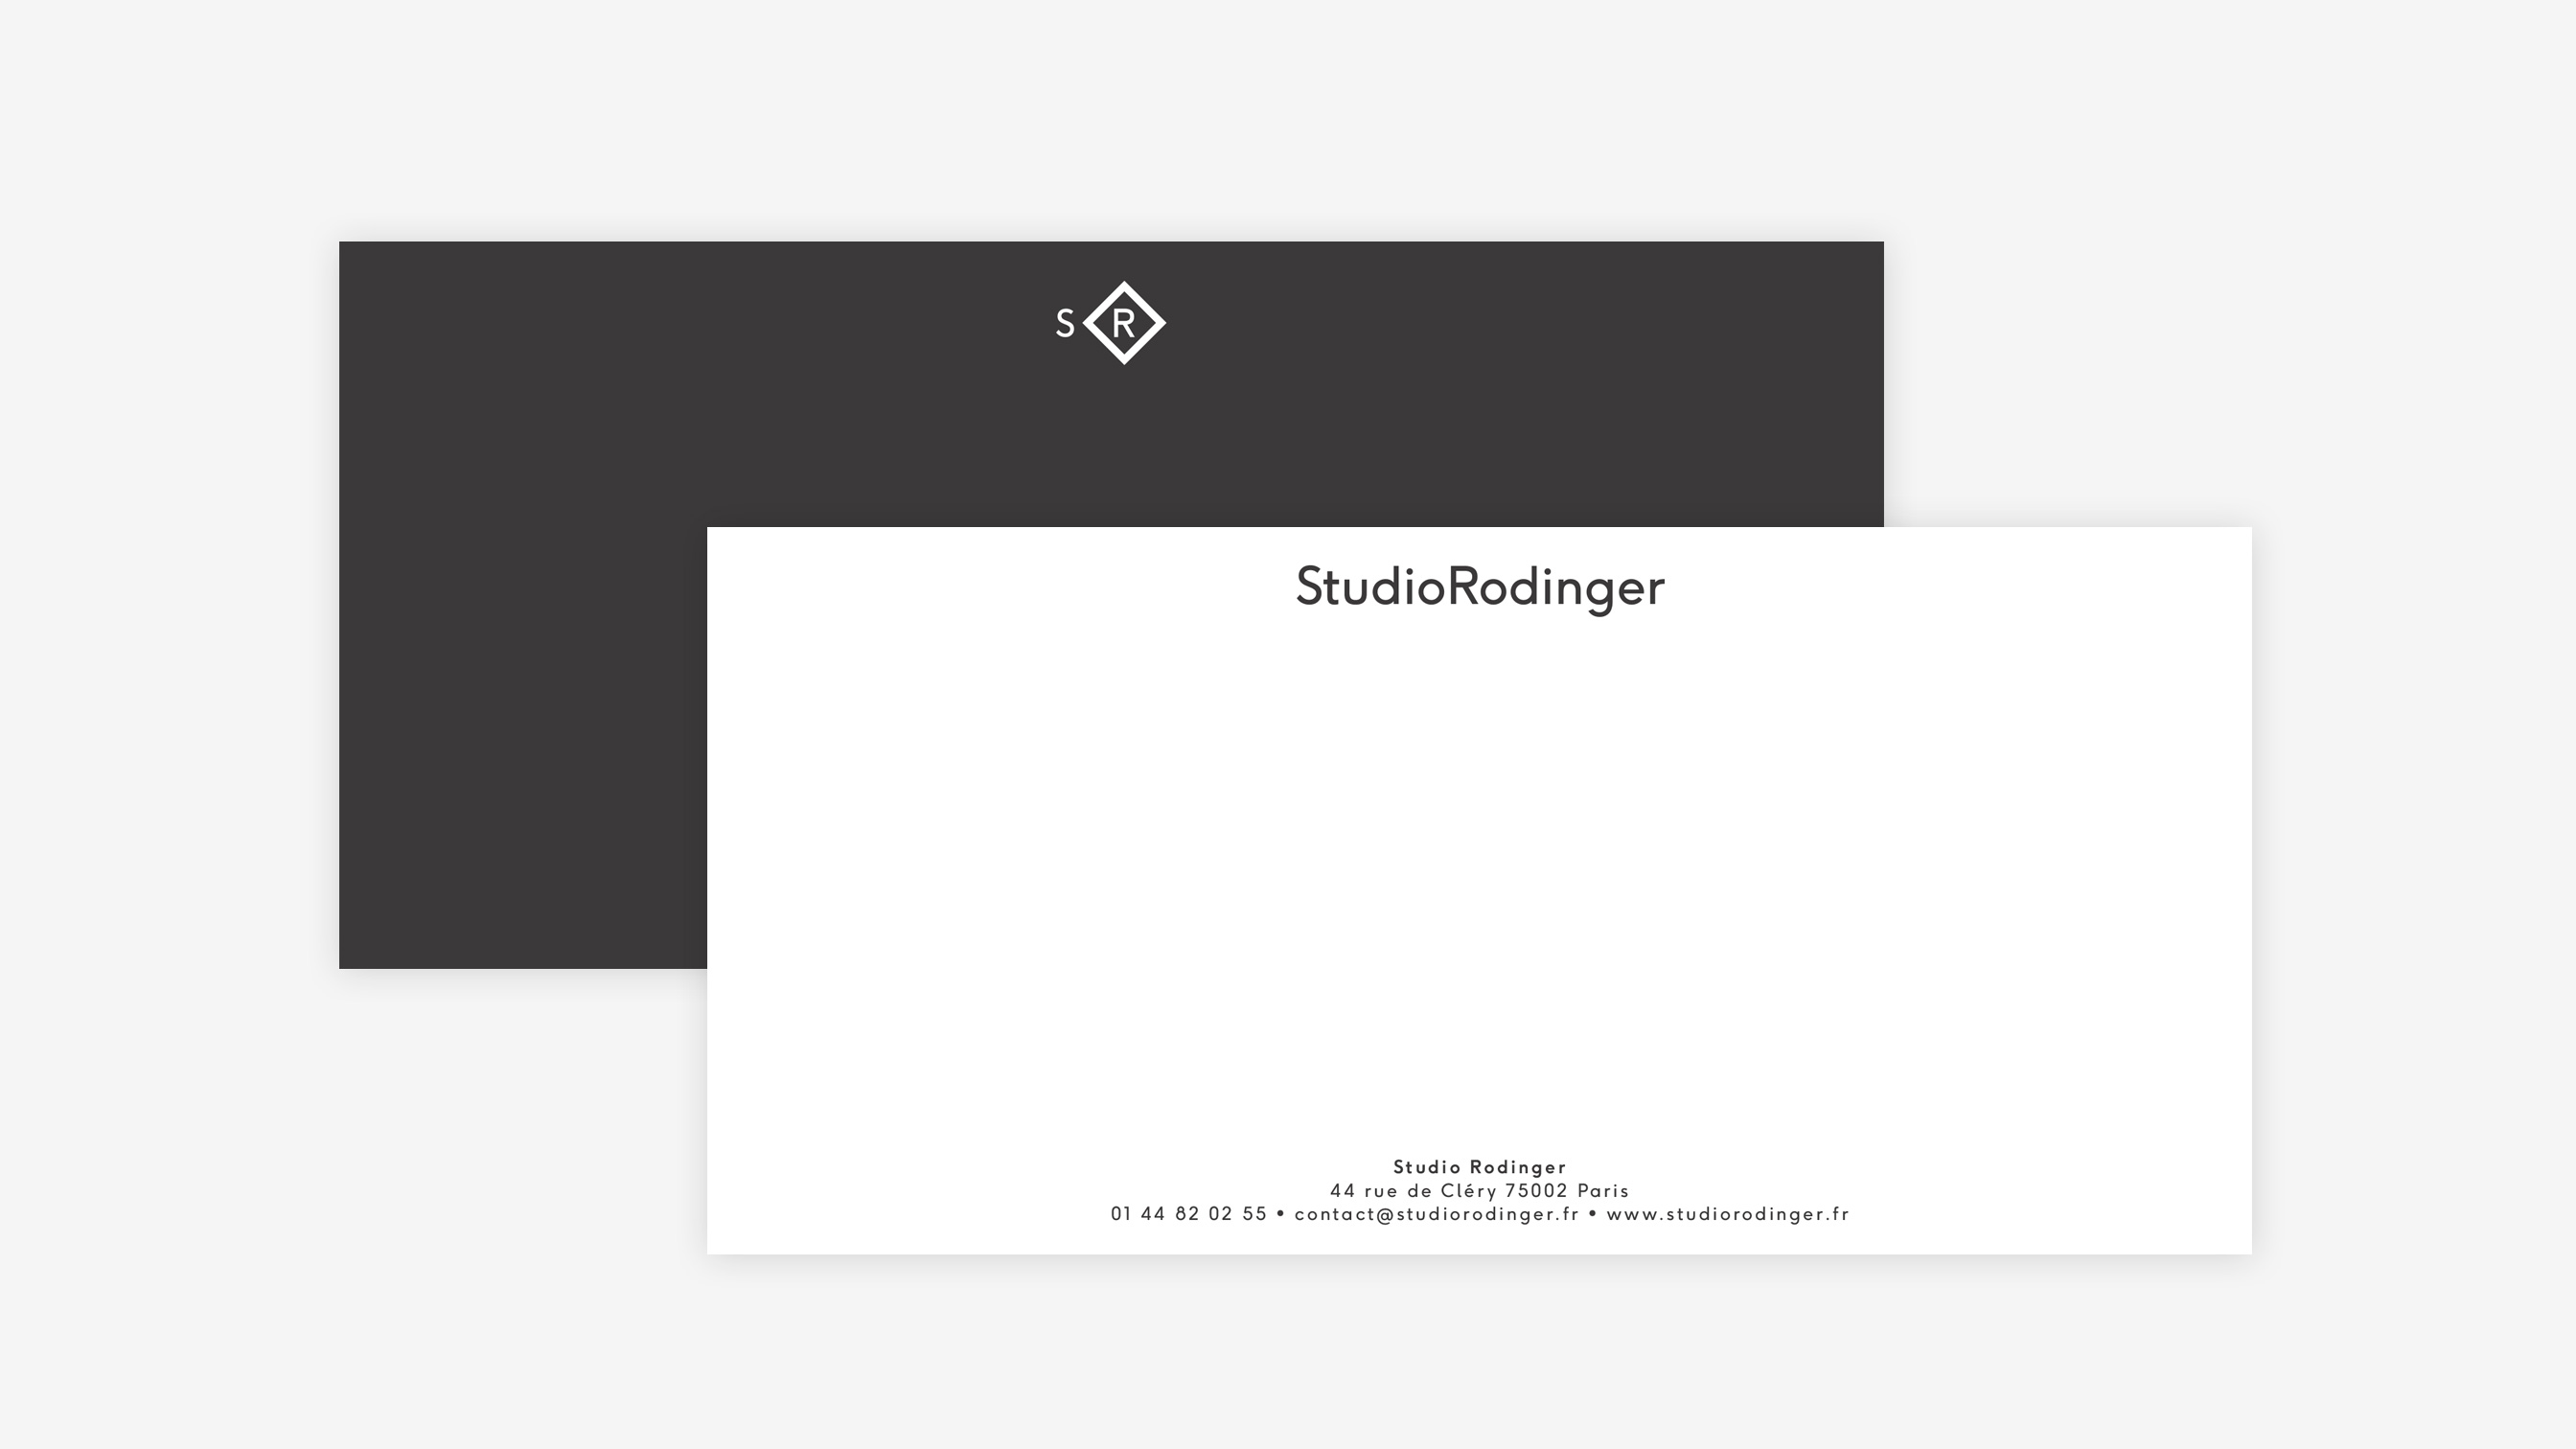 06-studio-rodinger-pikteo-webdesign-graphic-design-freelance-paris-bruxelles-londres